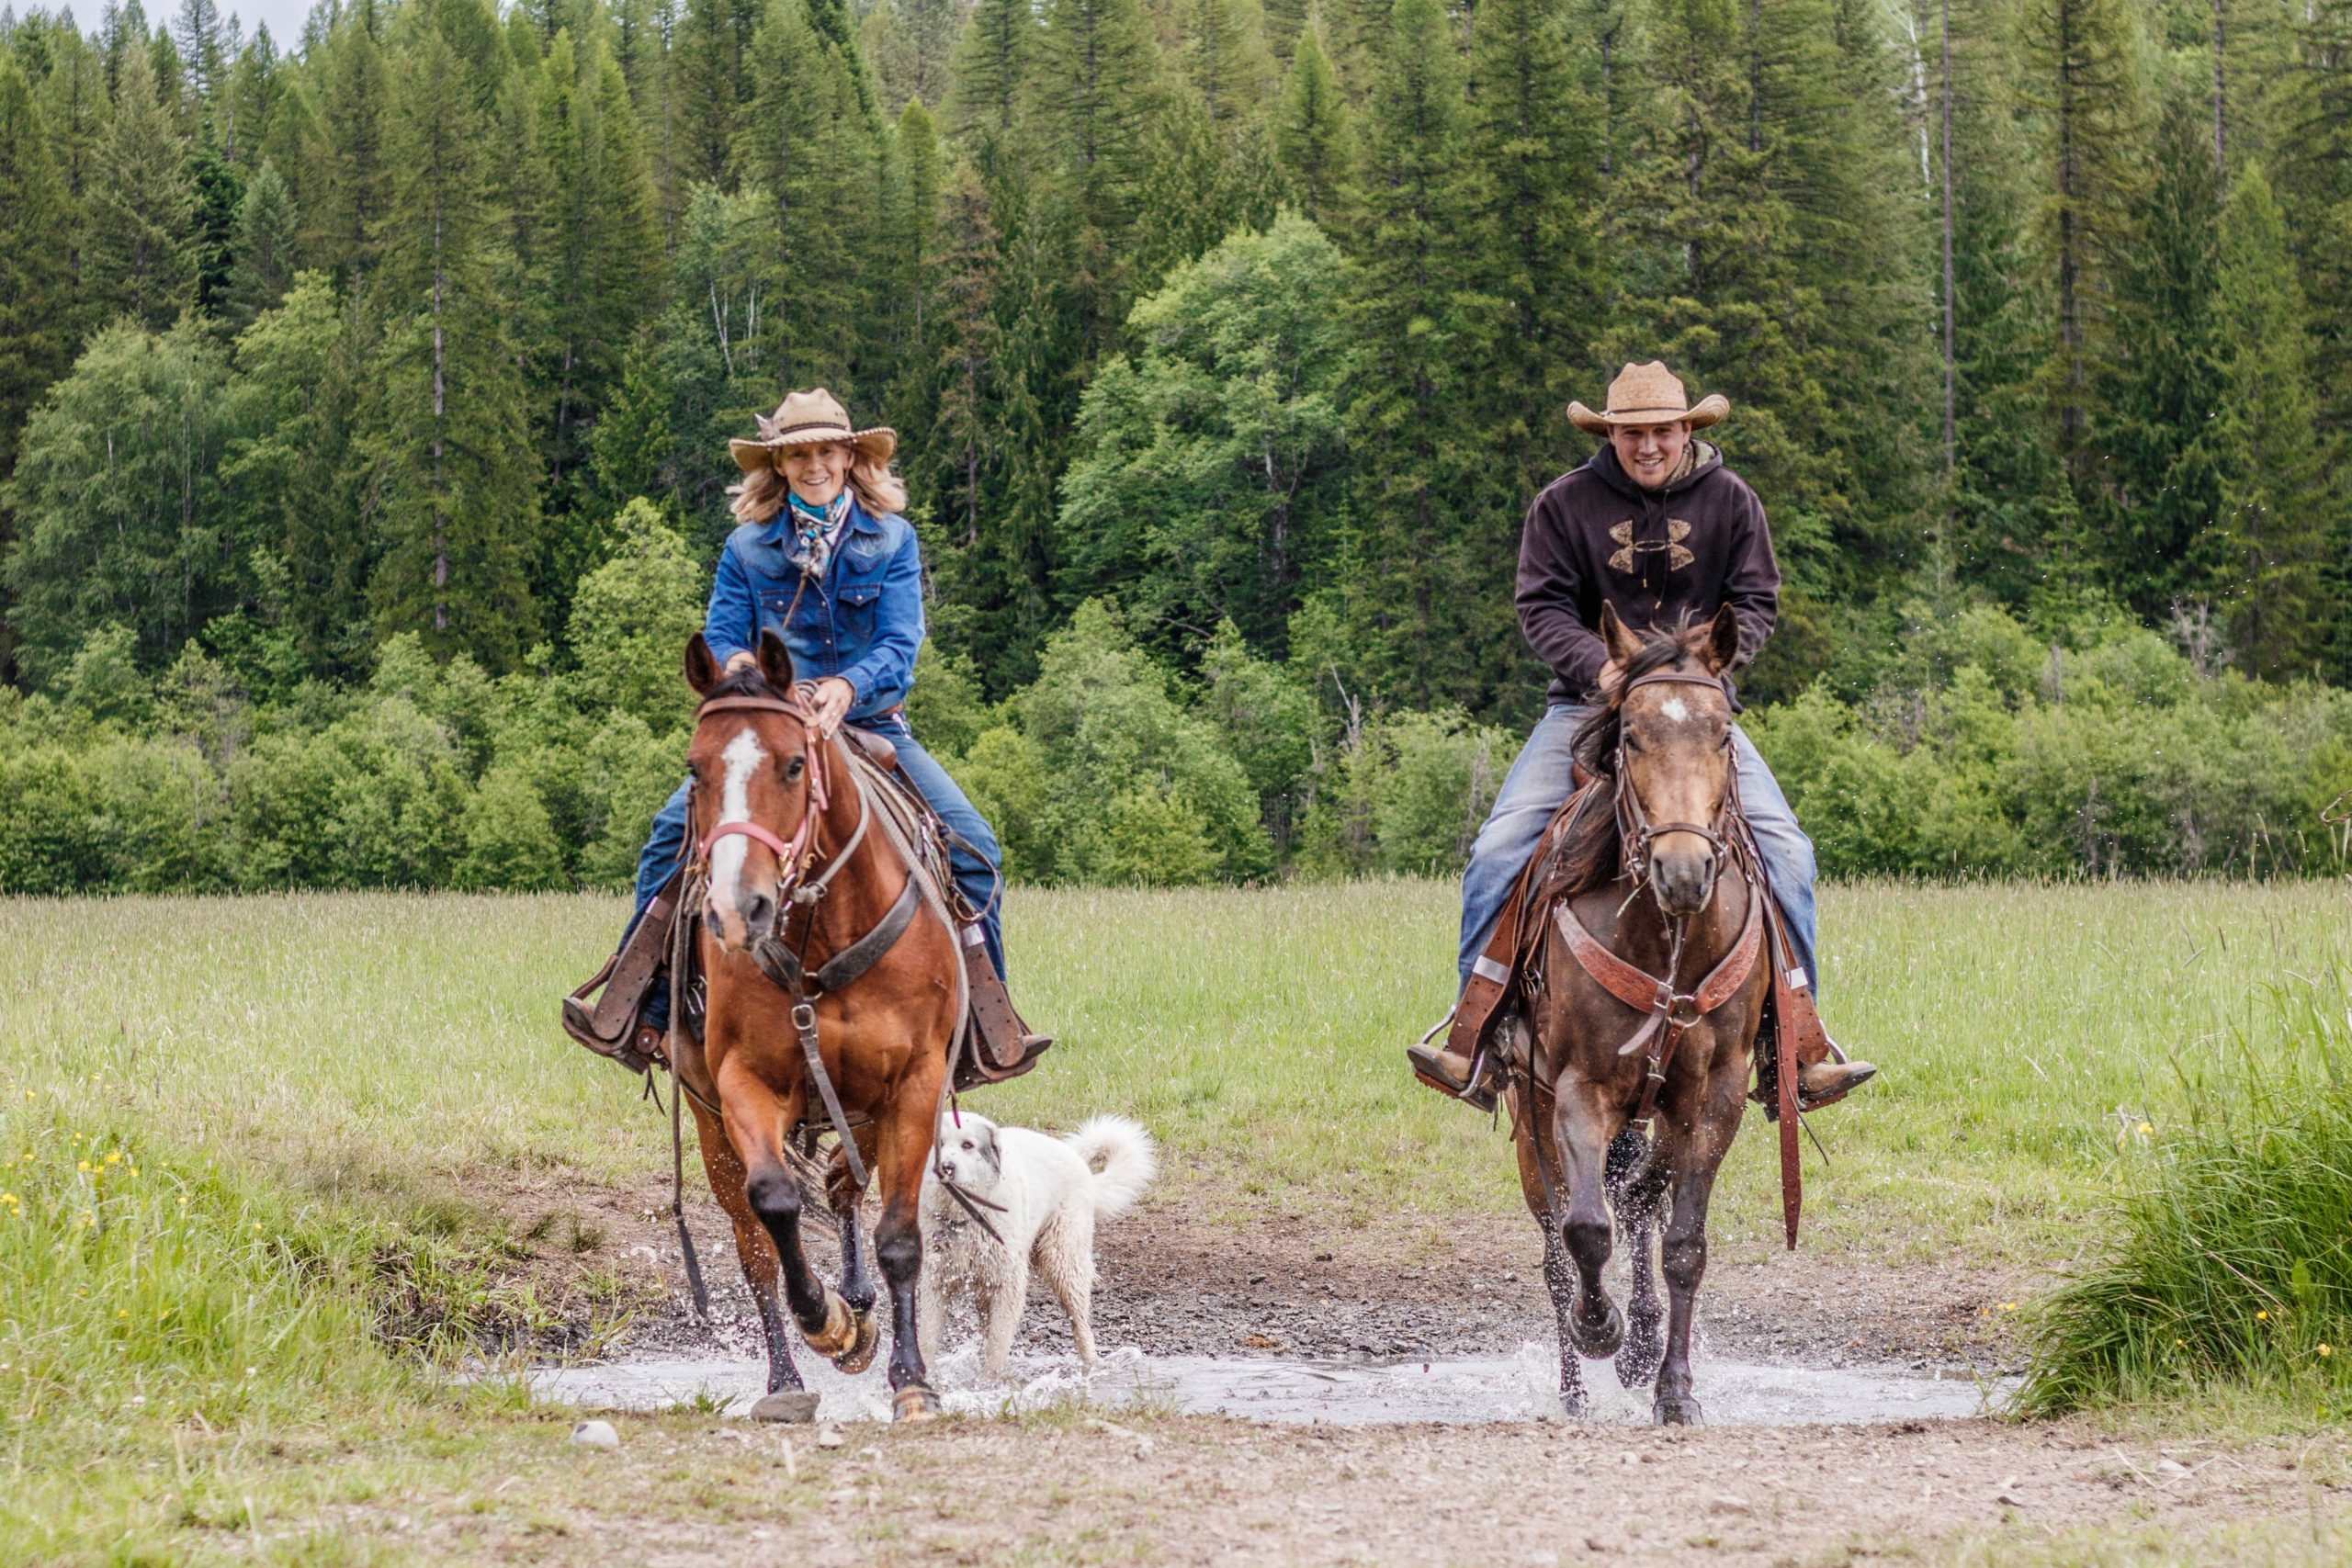 Western Pleasure dude ranch Horses two riders going through water with smiles